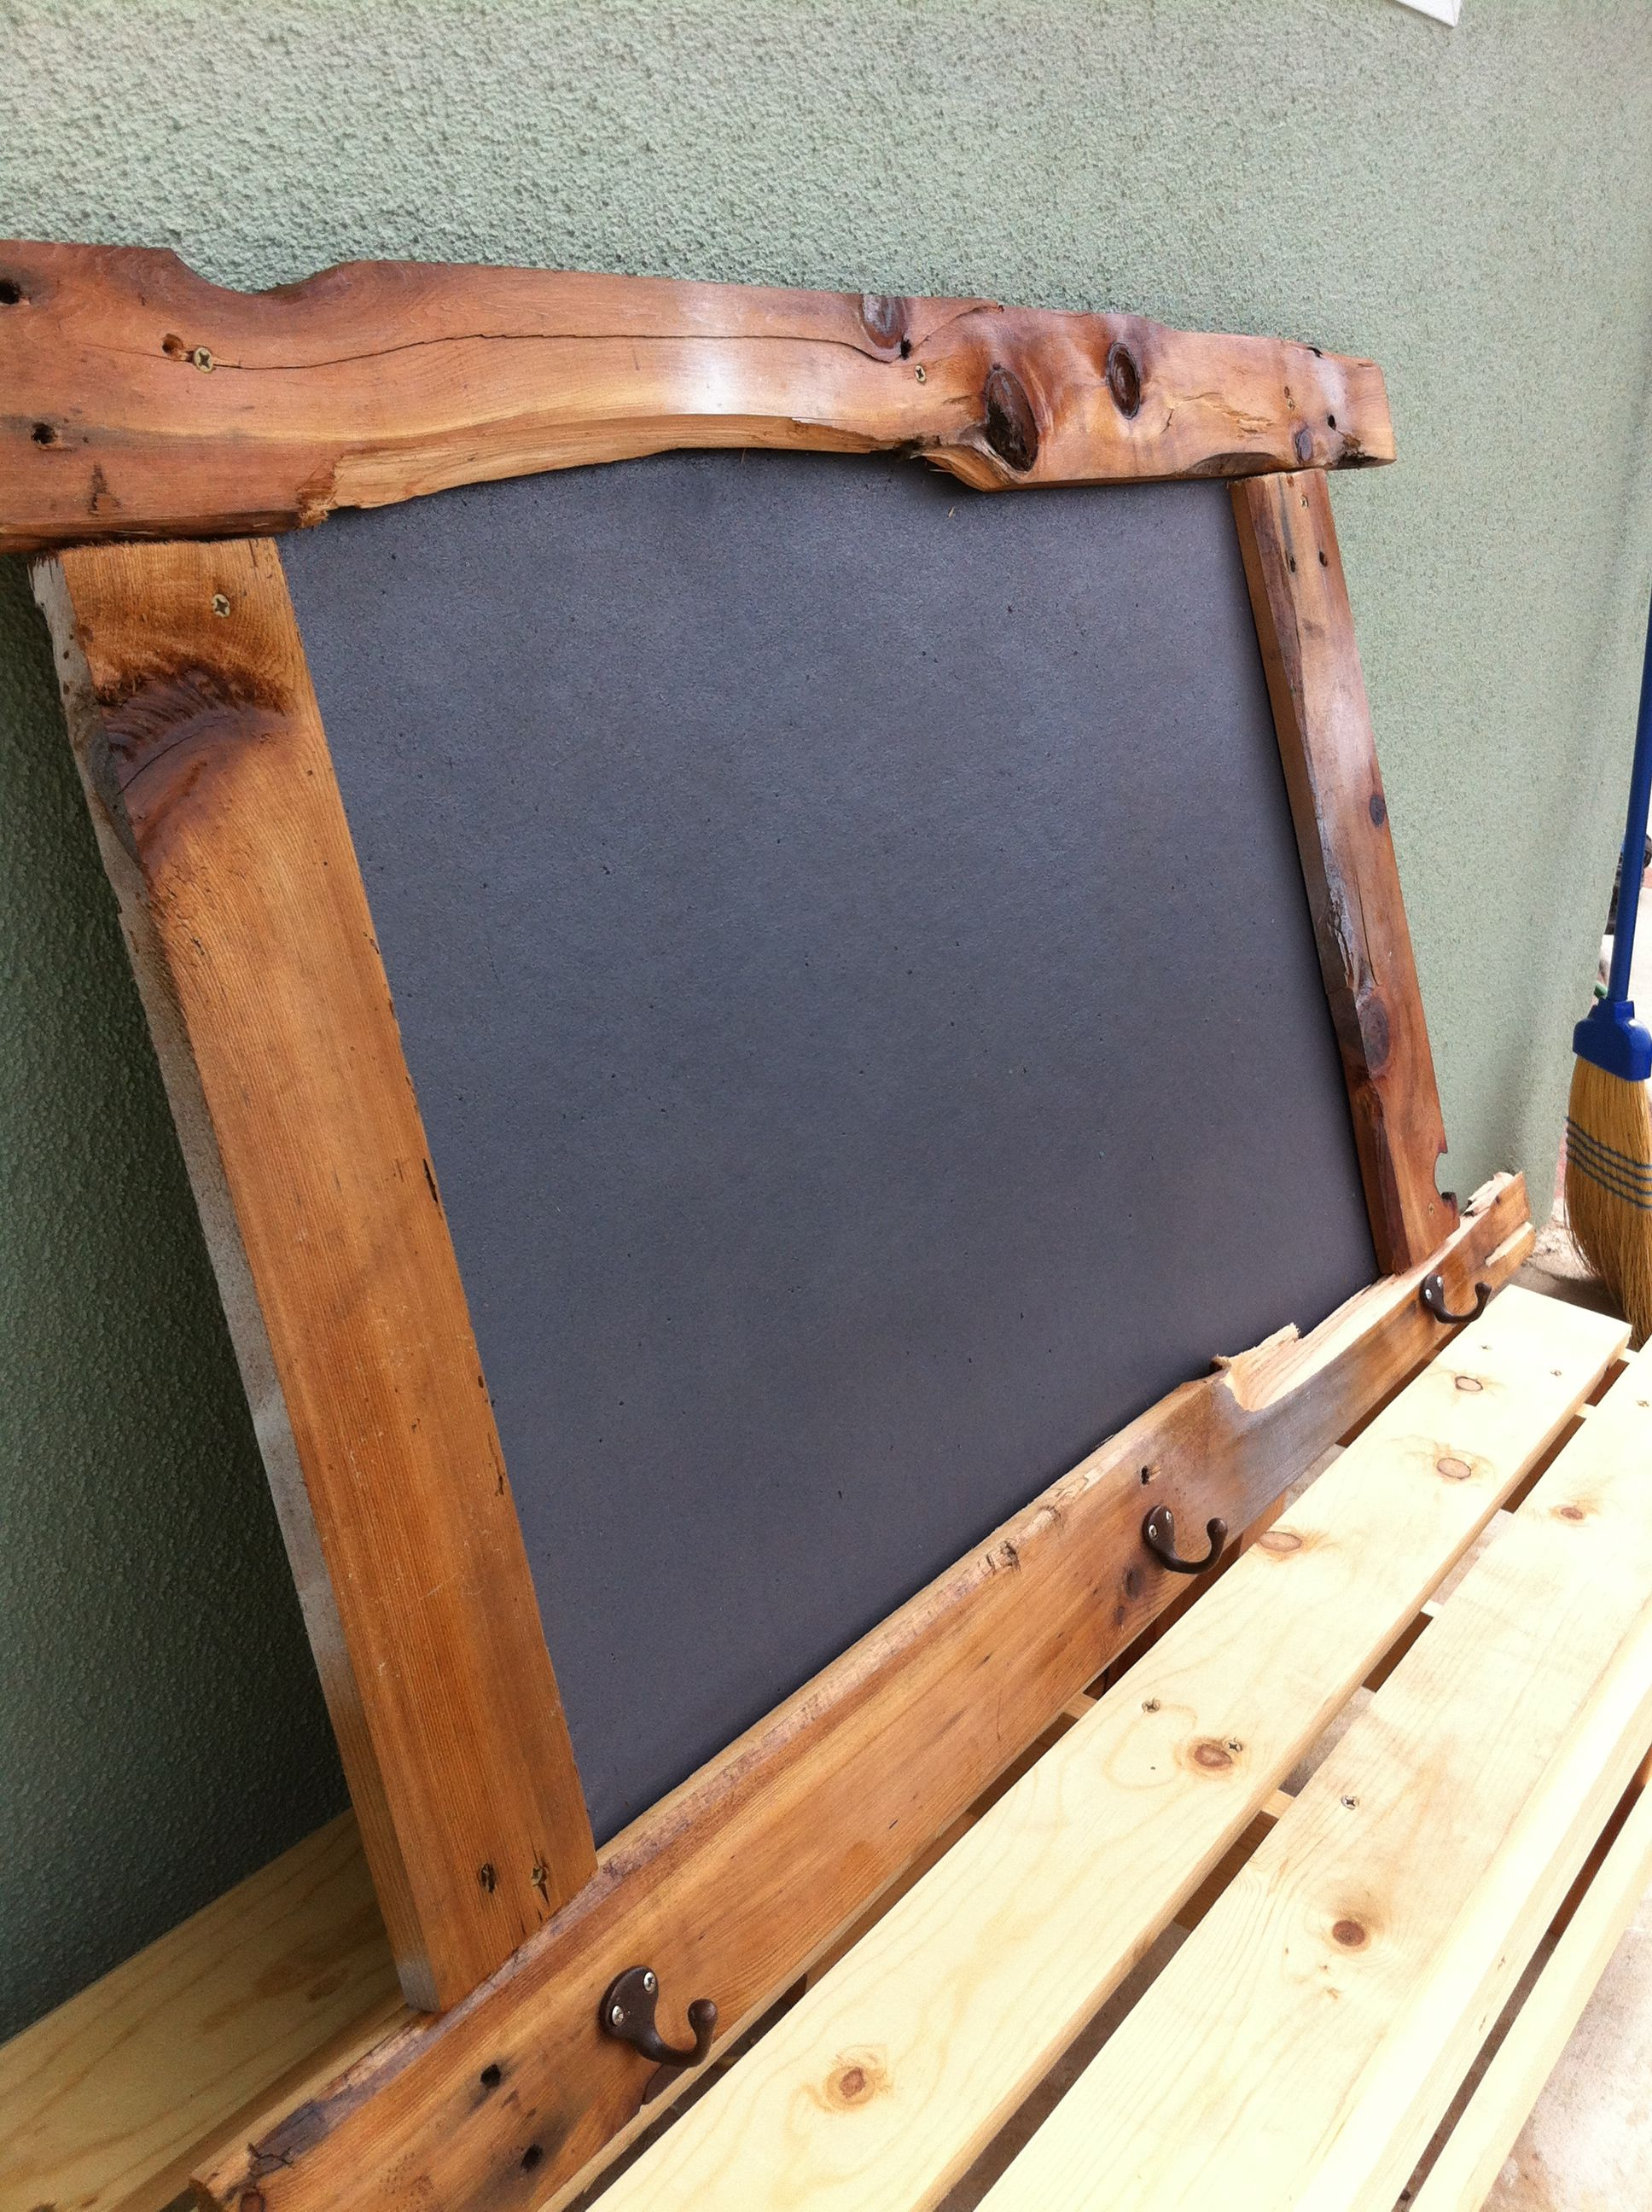 Rustic Pin Board Made From Pallet Wood And Bulletin Board.... Happy Bday